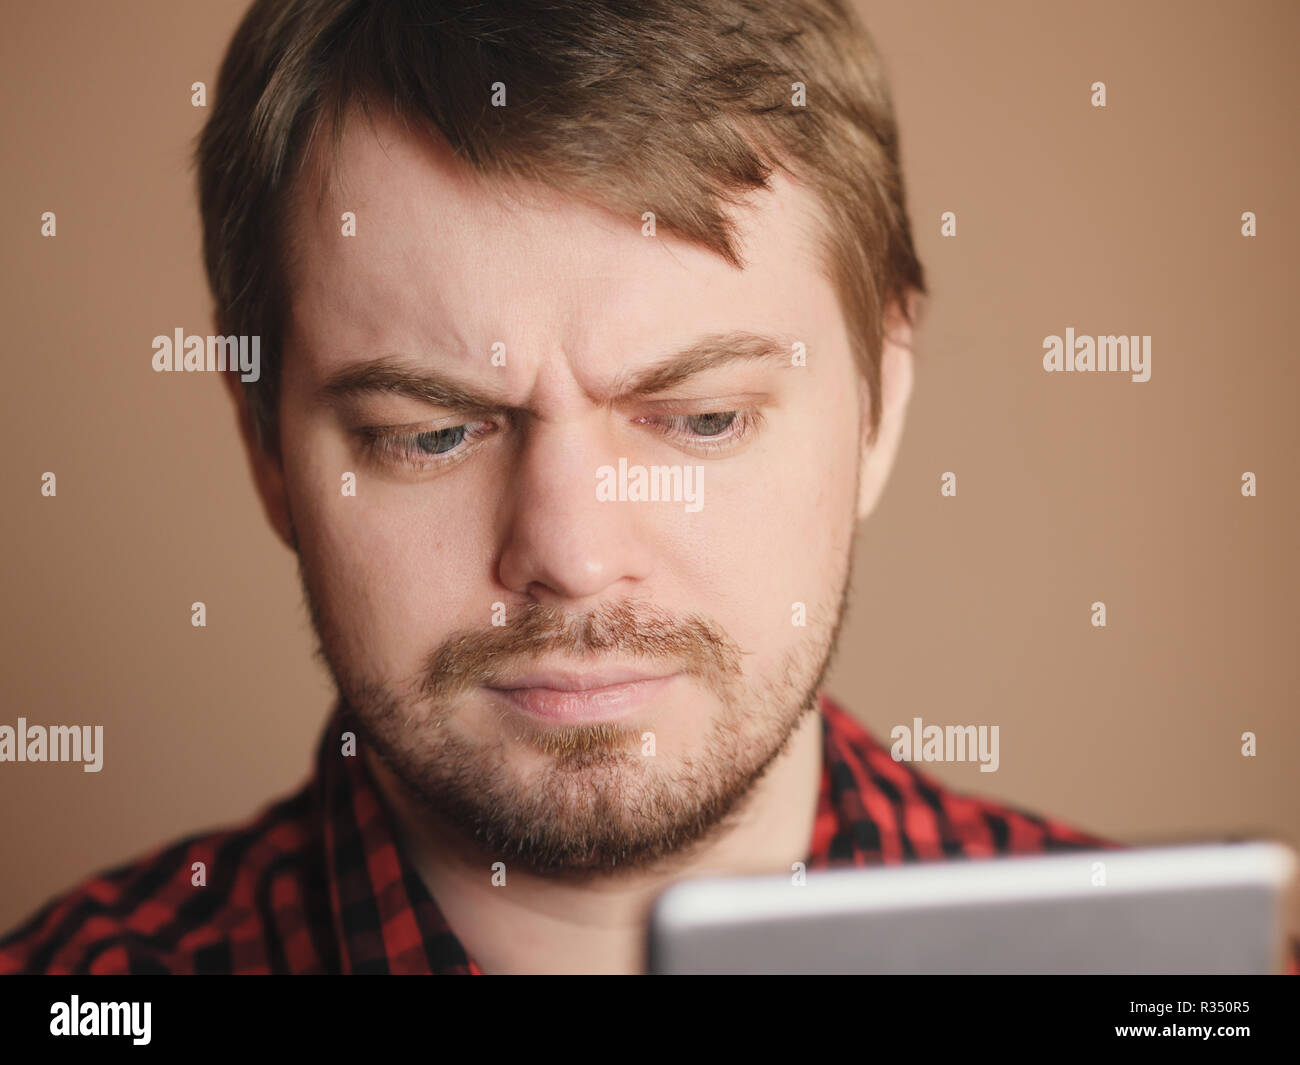 Young emotional man, looking down at pda on beige background. - Stock Image